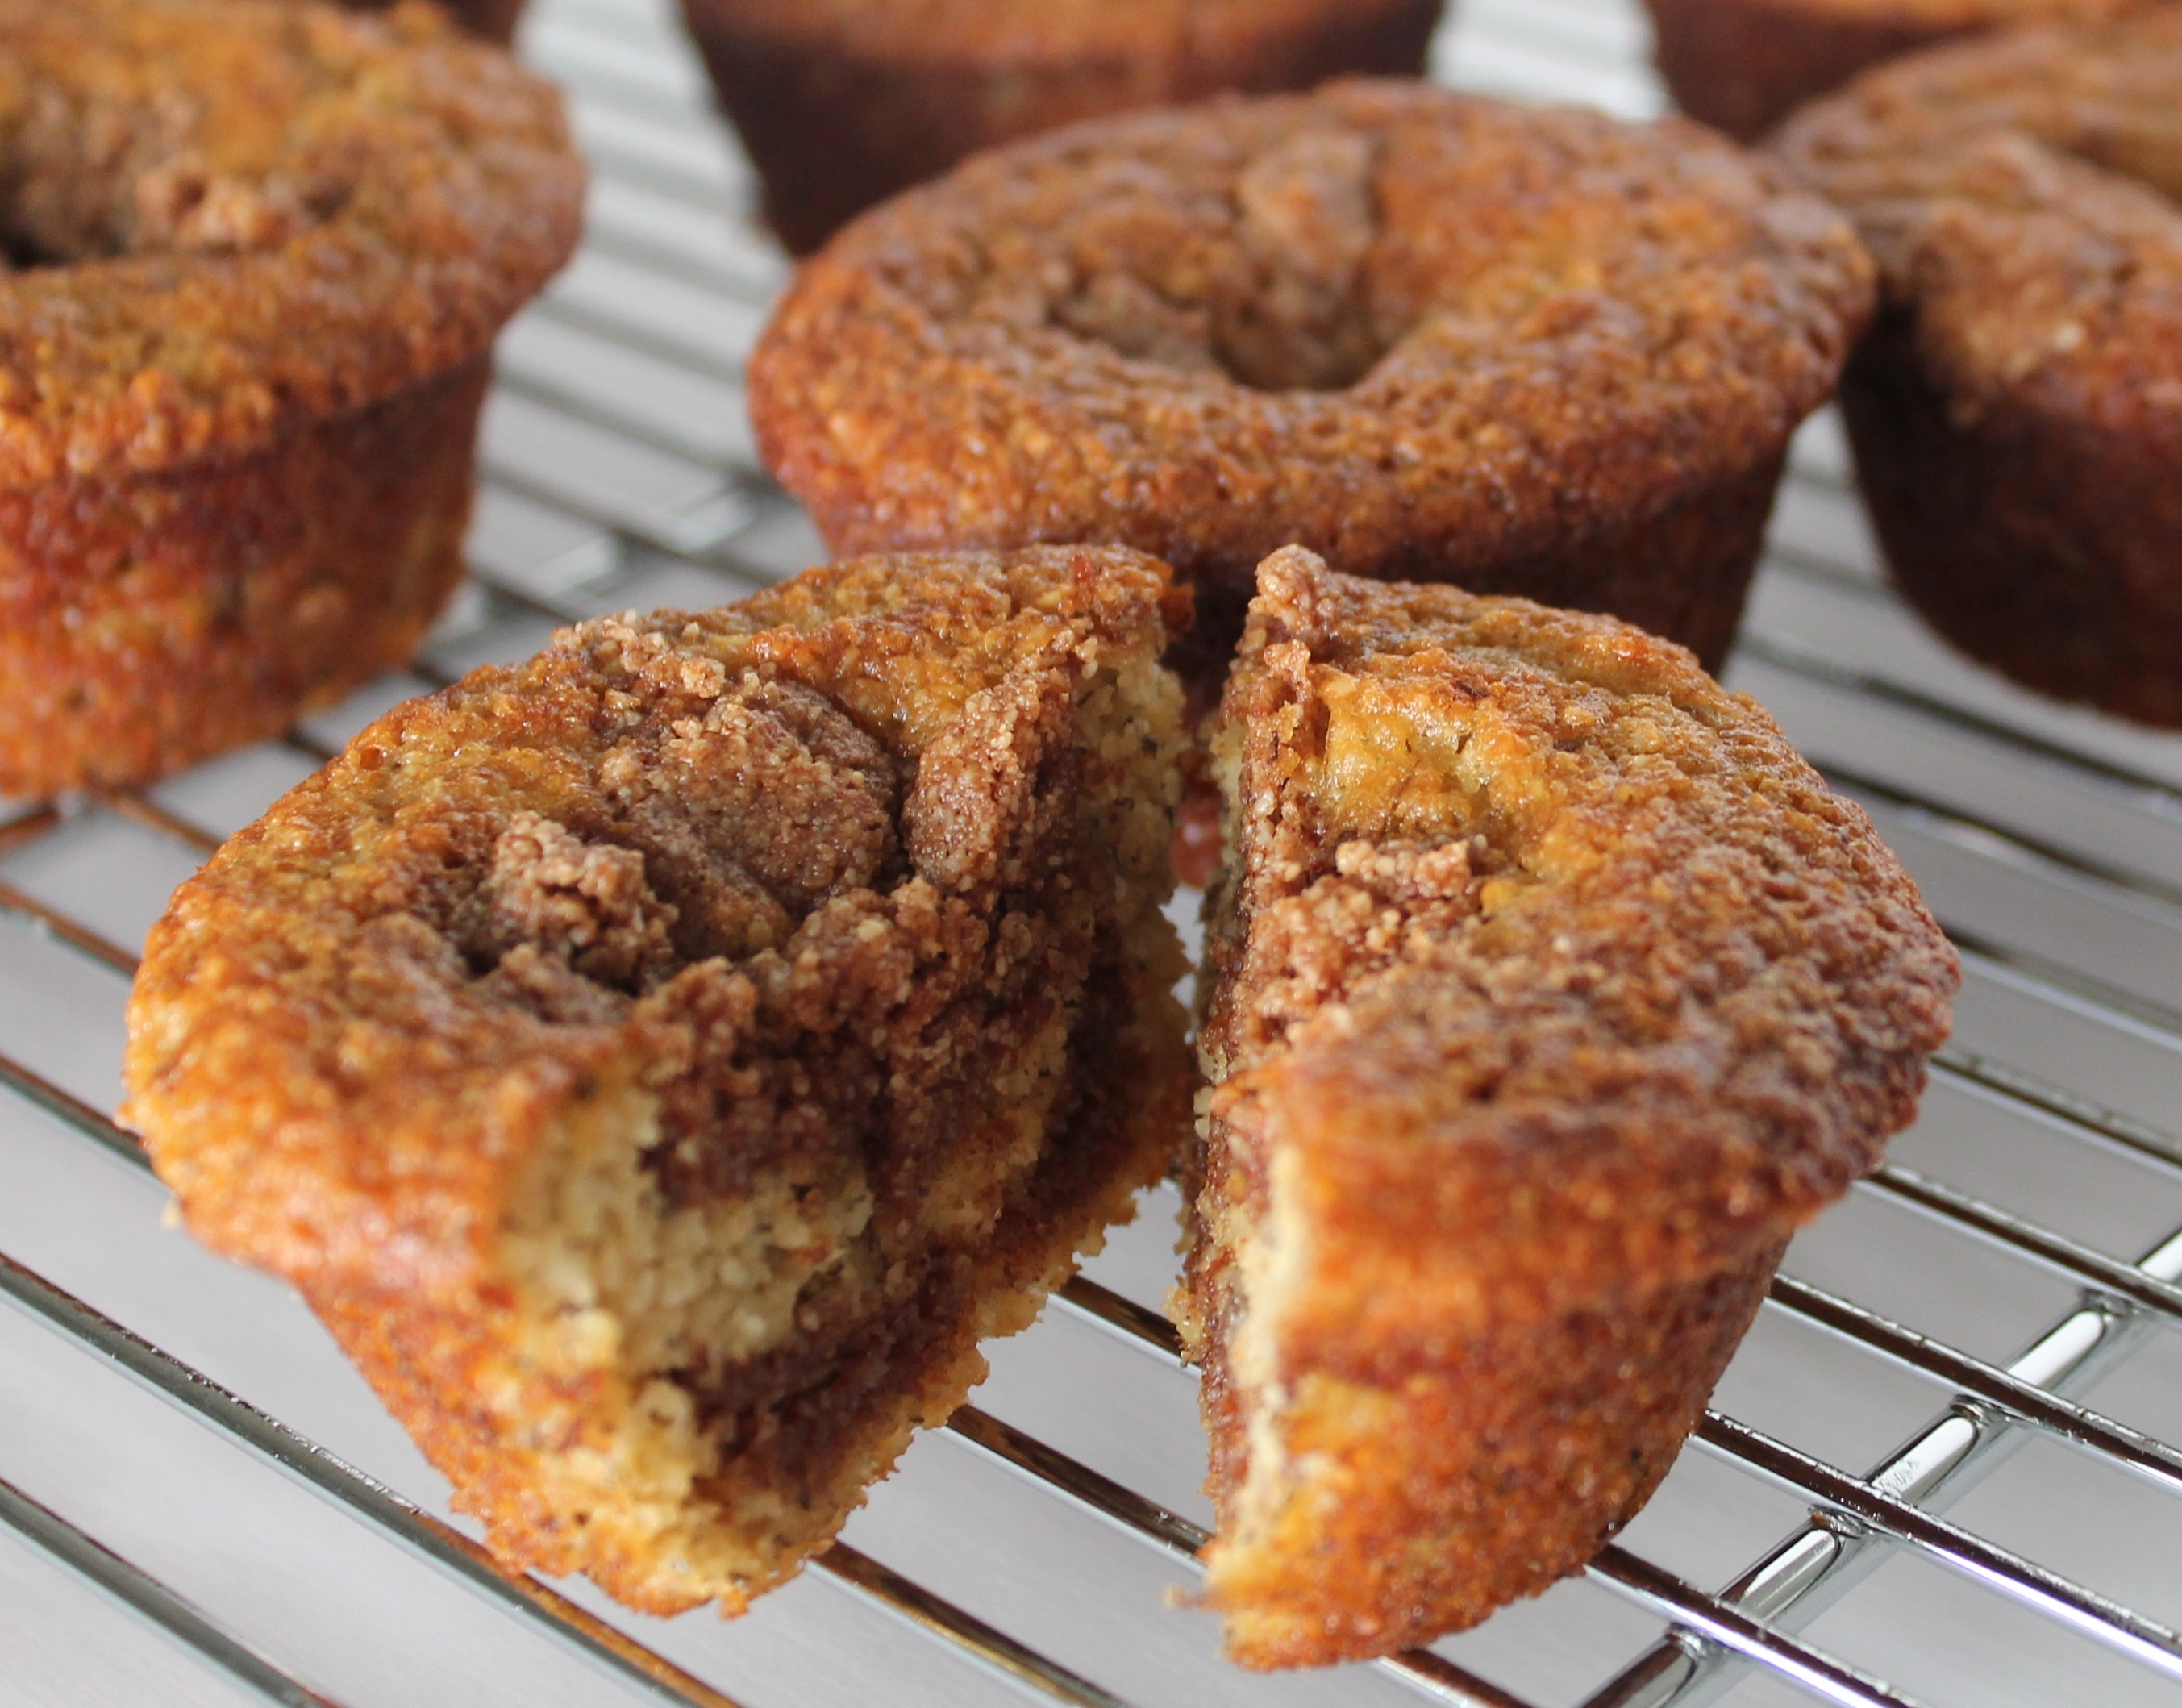 muffins are fluffy, moist and have the perfect amount of cinnamon ...